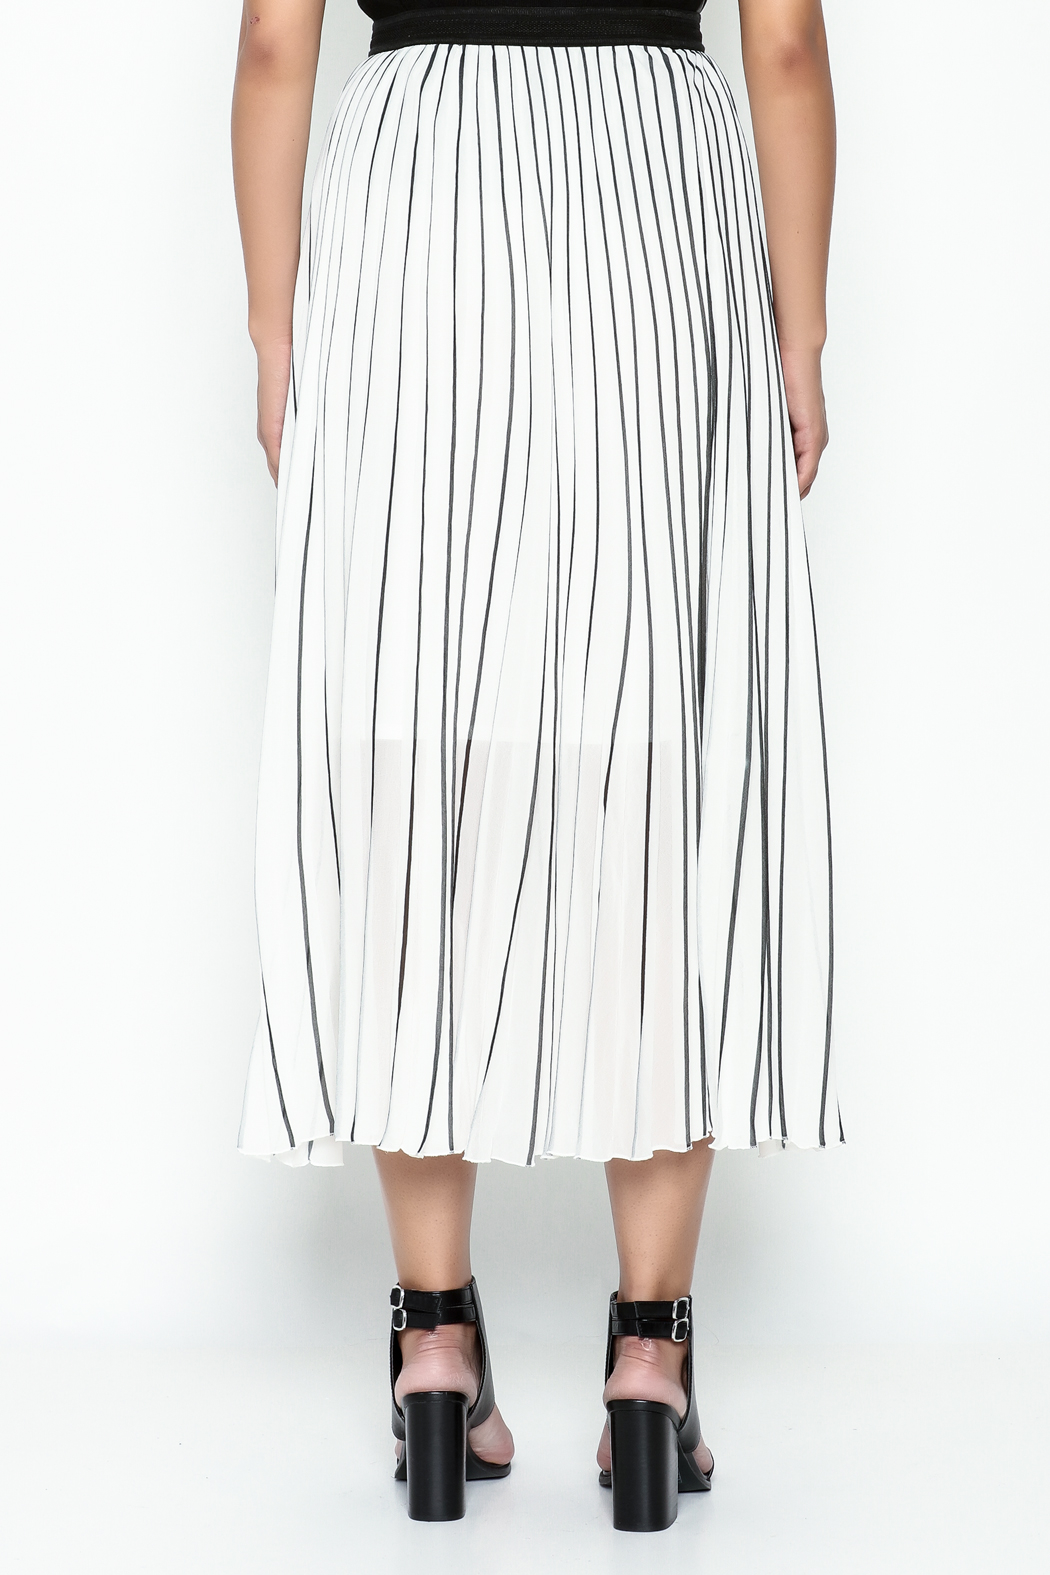 MC Oasis Striped White Skirt - Back Cropped Image